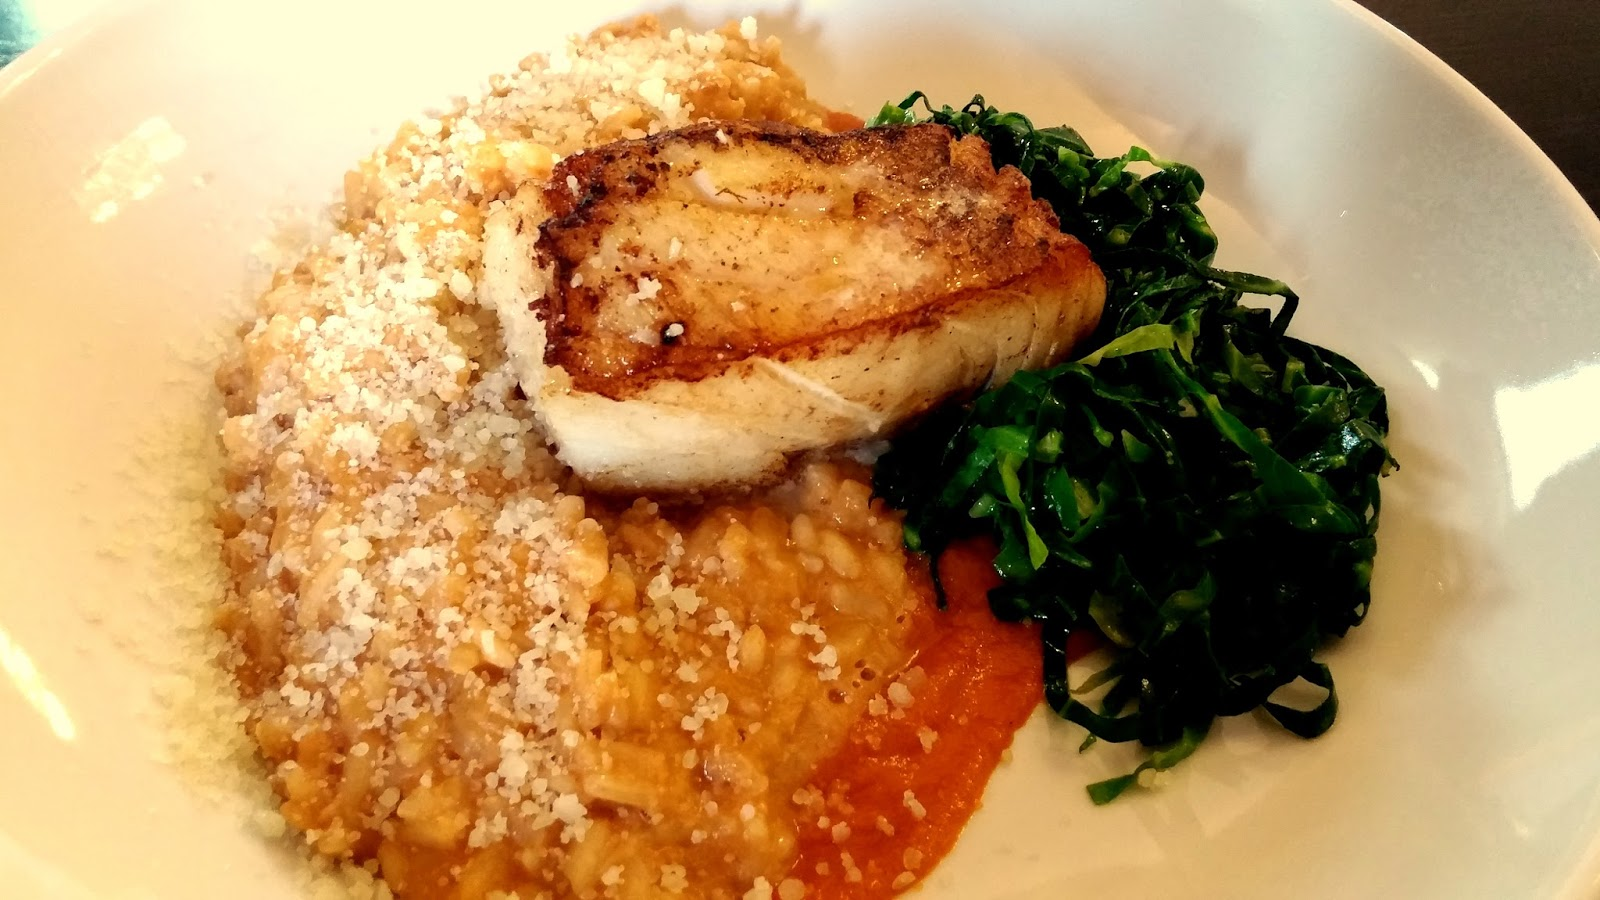 crab risotto with pan fried cod and kale in rich tomato sauce at oak tree restaurant bluestone wales